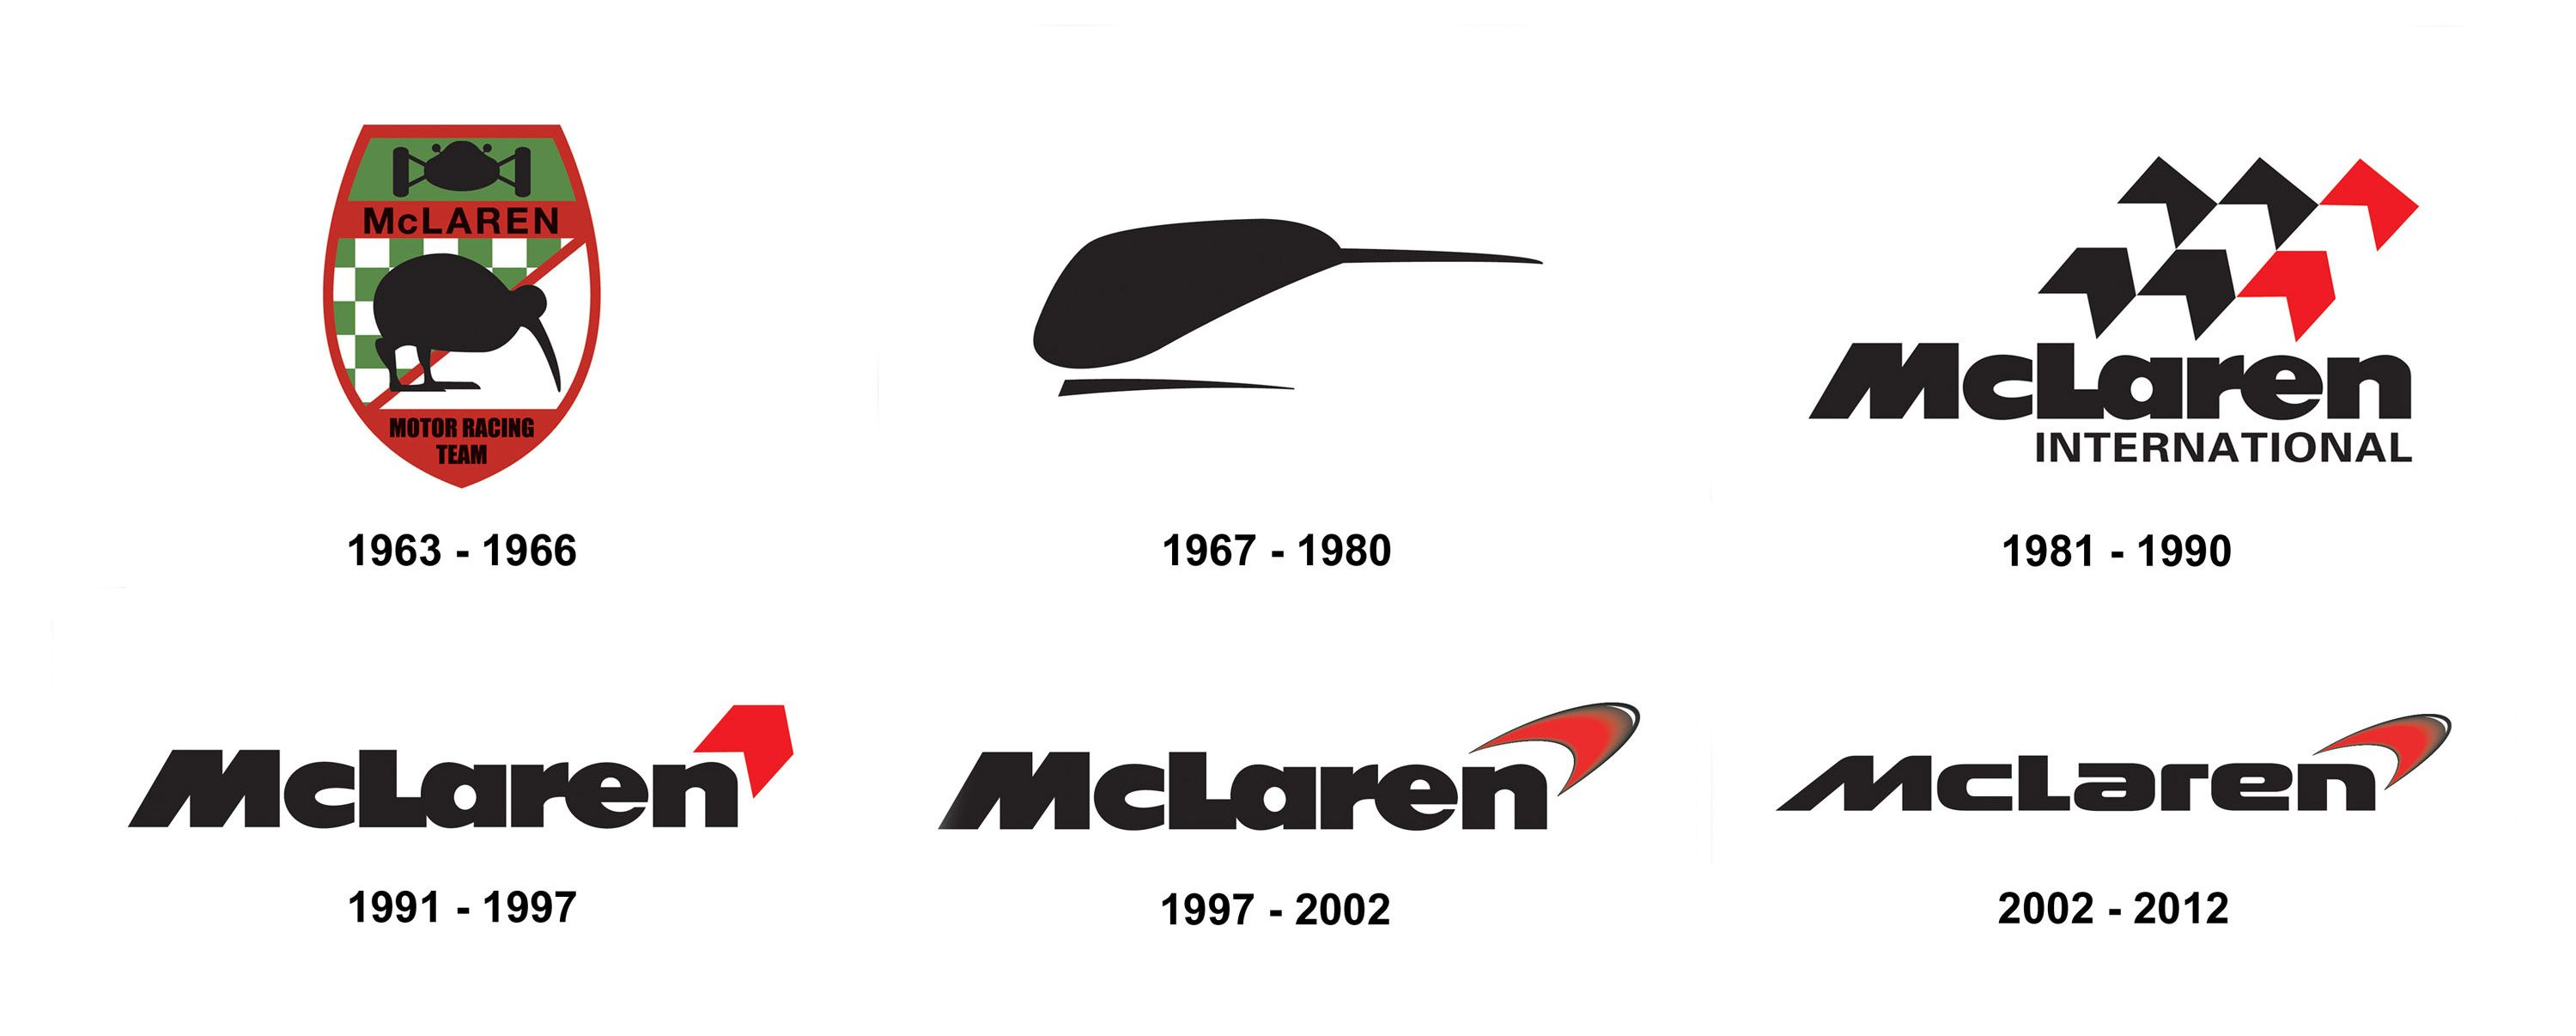 McLaren Logo - McLaren Logo Meaning and History, latest models | World Cars Brands